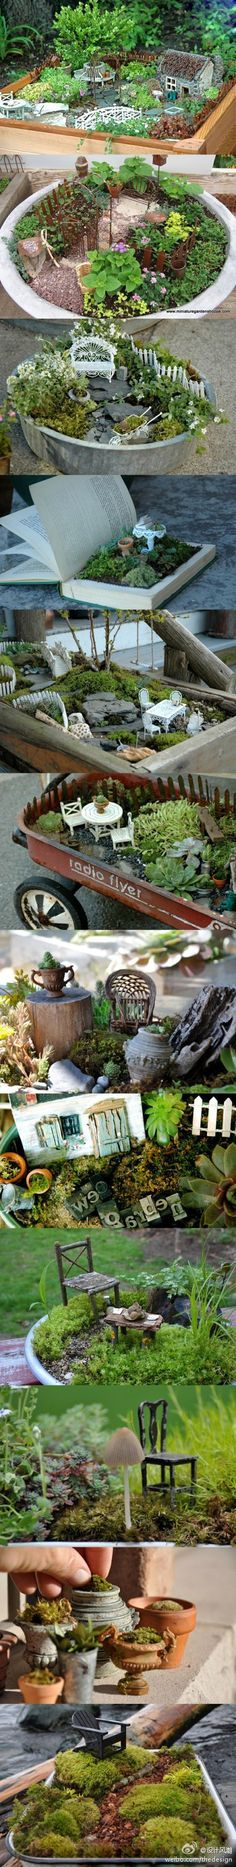 mini gardens - little big things! love these so much.